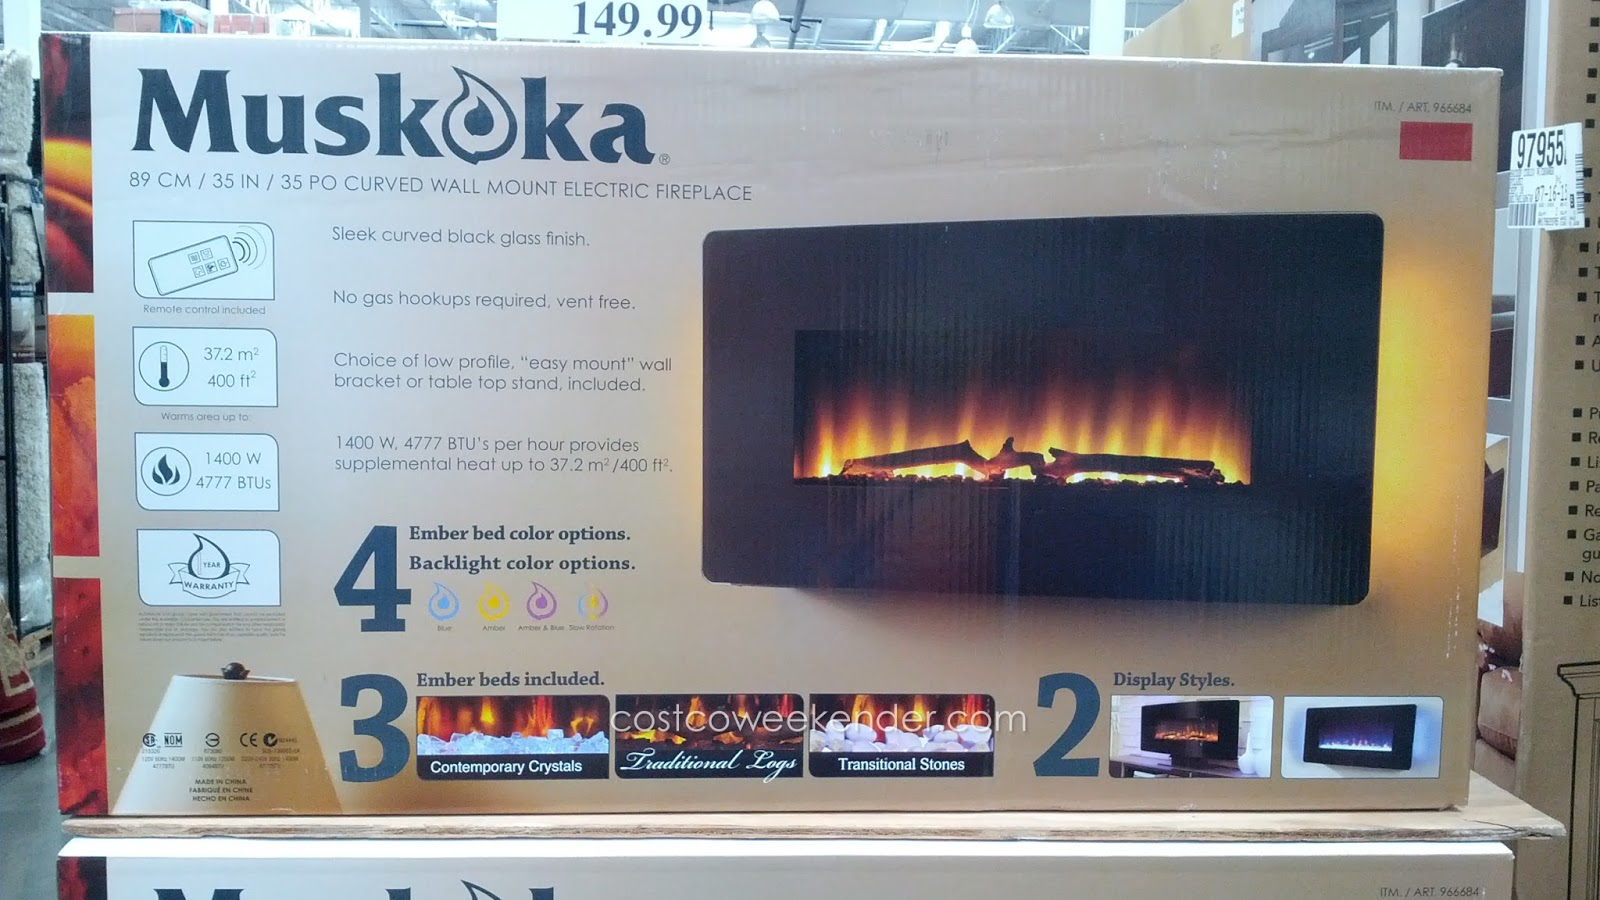 Curved Electric Fireplace Greenway Home Products Muskoka Curved Wall Mount Electric